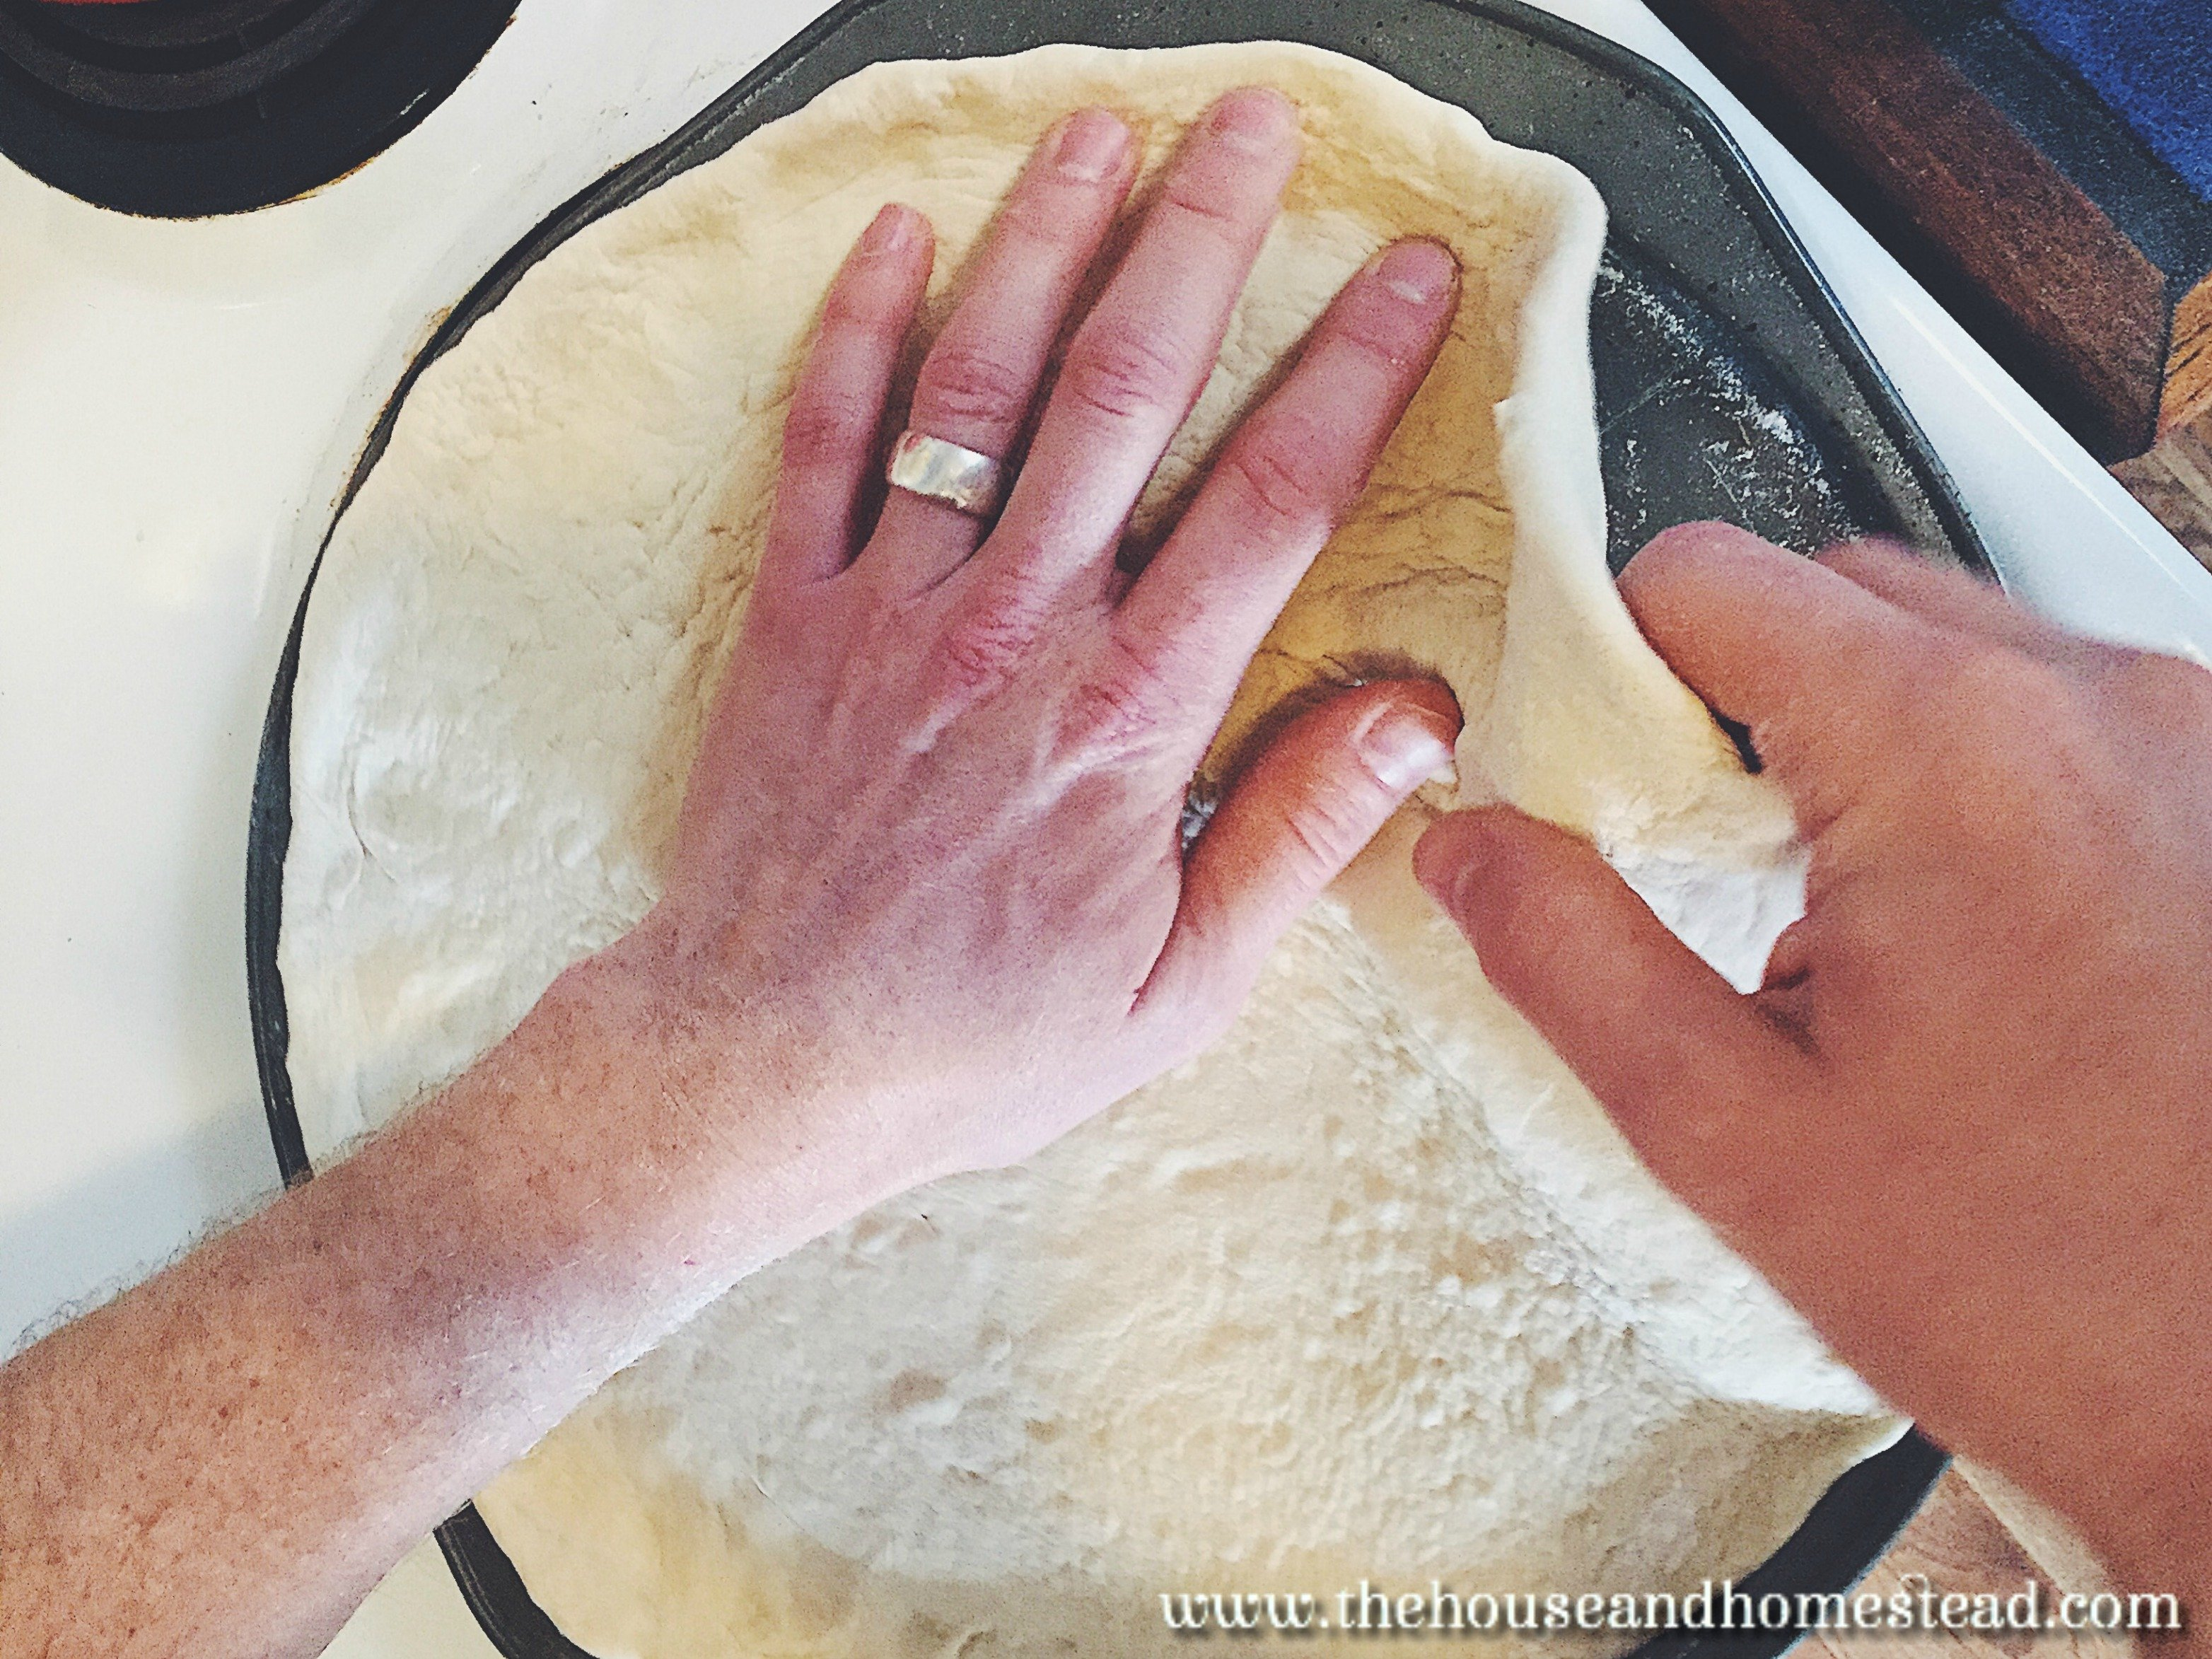 Perfect, easy homemade pizza dough for a perfect pizza crust. You'll never spend money on takeout pizza again once you've tried this super simple pizza dough recipe. #pizzadough #pizzacrust #homemadepizza